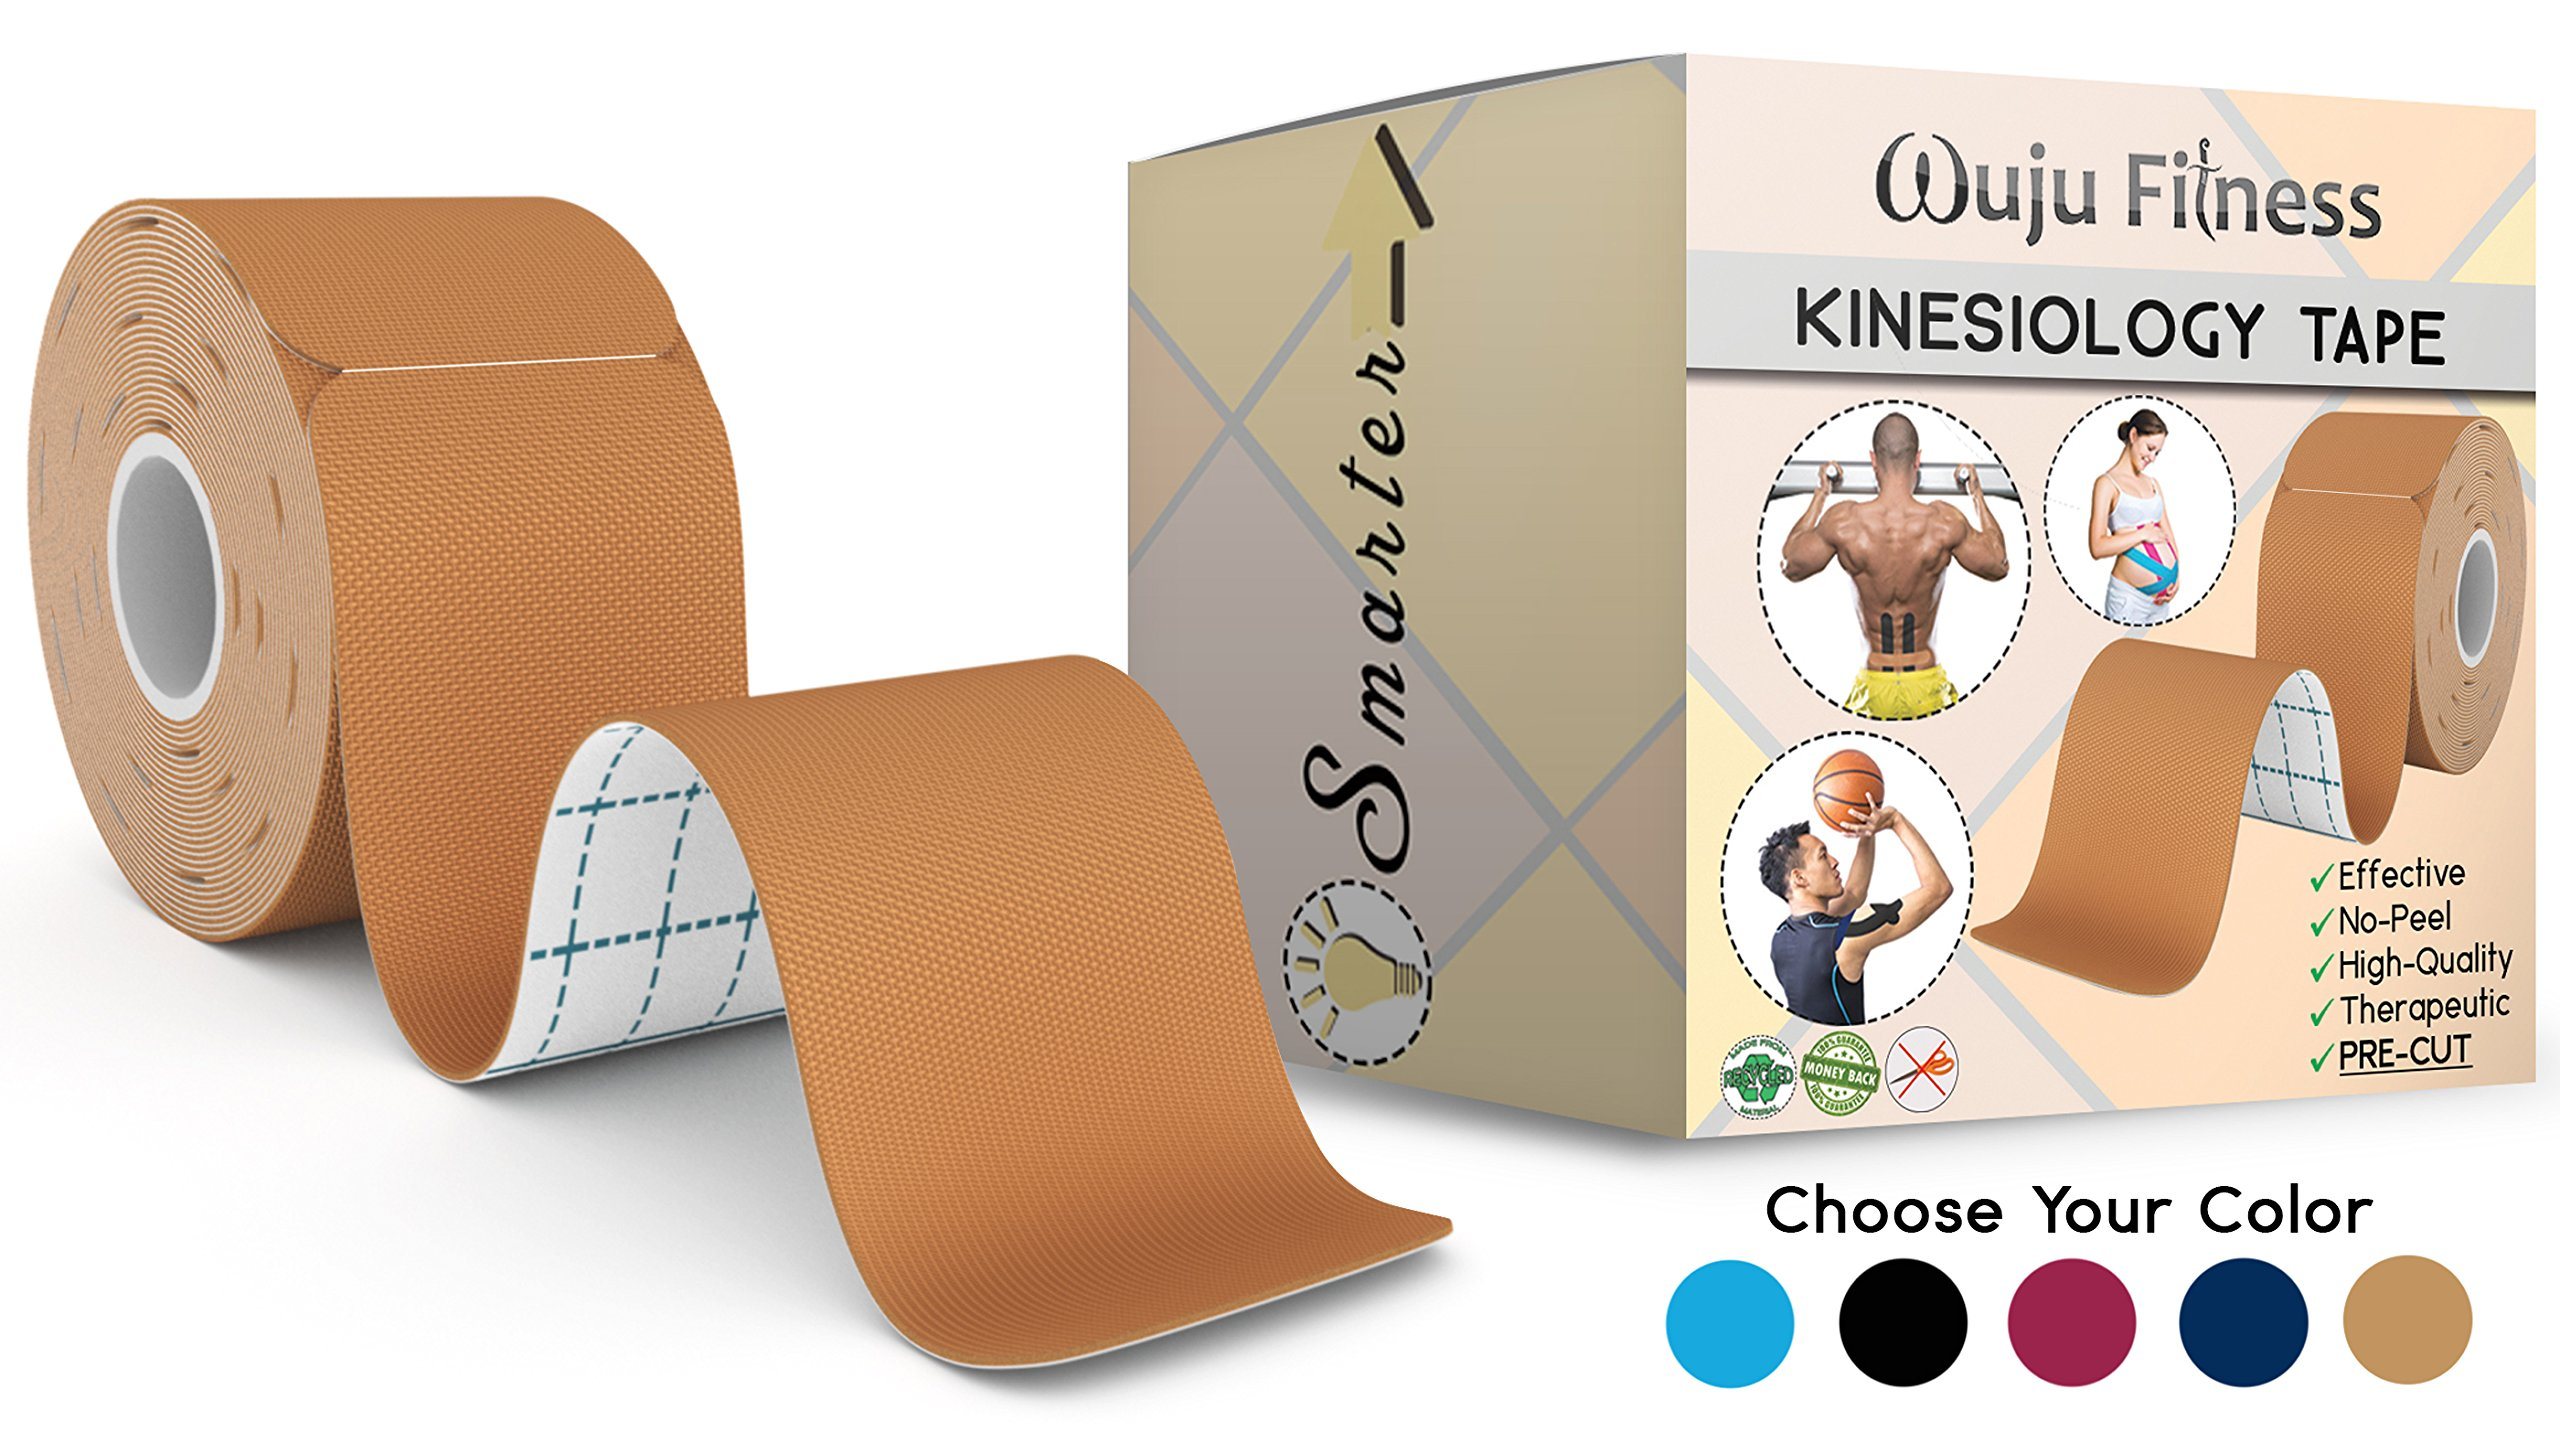 """Athletic Tape for First Aid Kit, Physical Support Therapy, Sports Exercises. Lower Back, Heel, Foot, Joint, Shoulder, Muscle and Plantar Fasciitis Pain Relief. 20 precut Nude KT strips 2""""x10 by Wuju Fitness"""